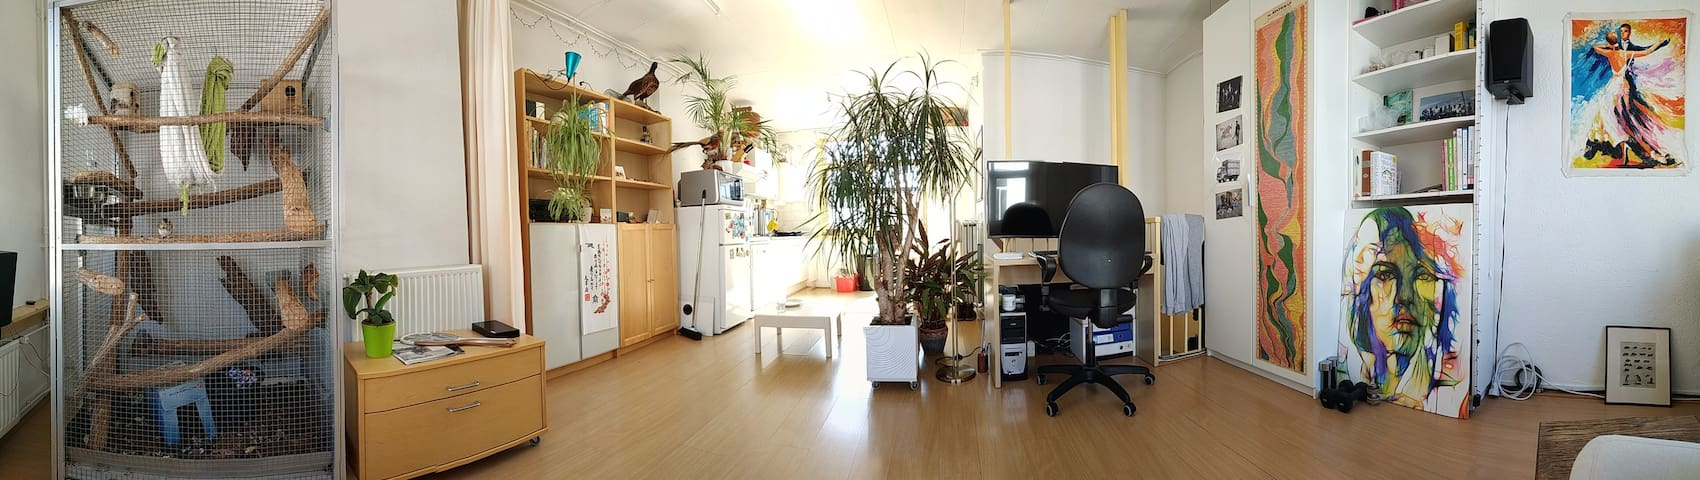 Studio near city center and trainstation